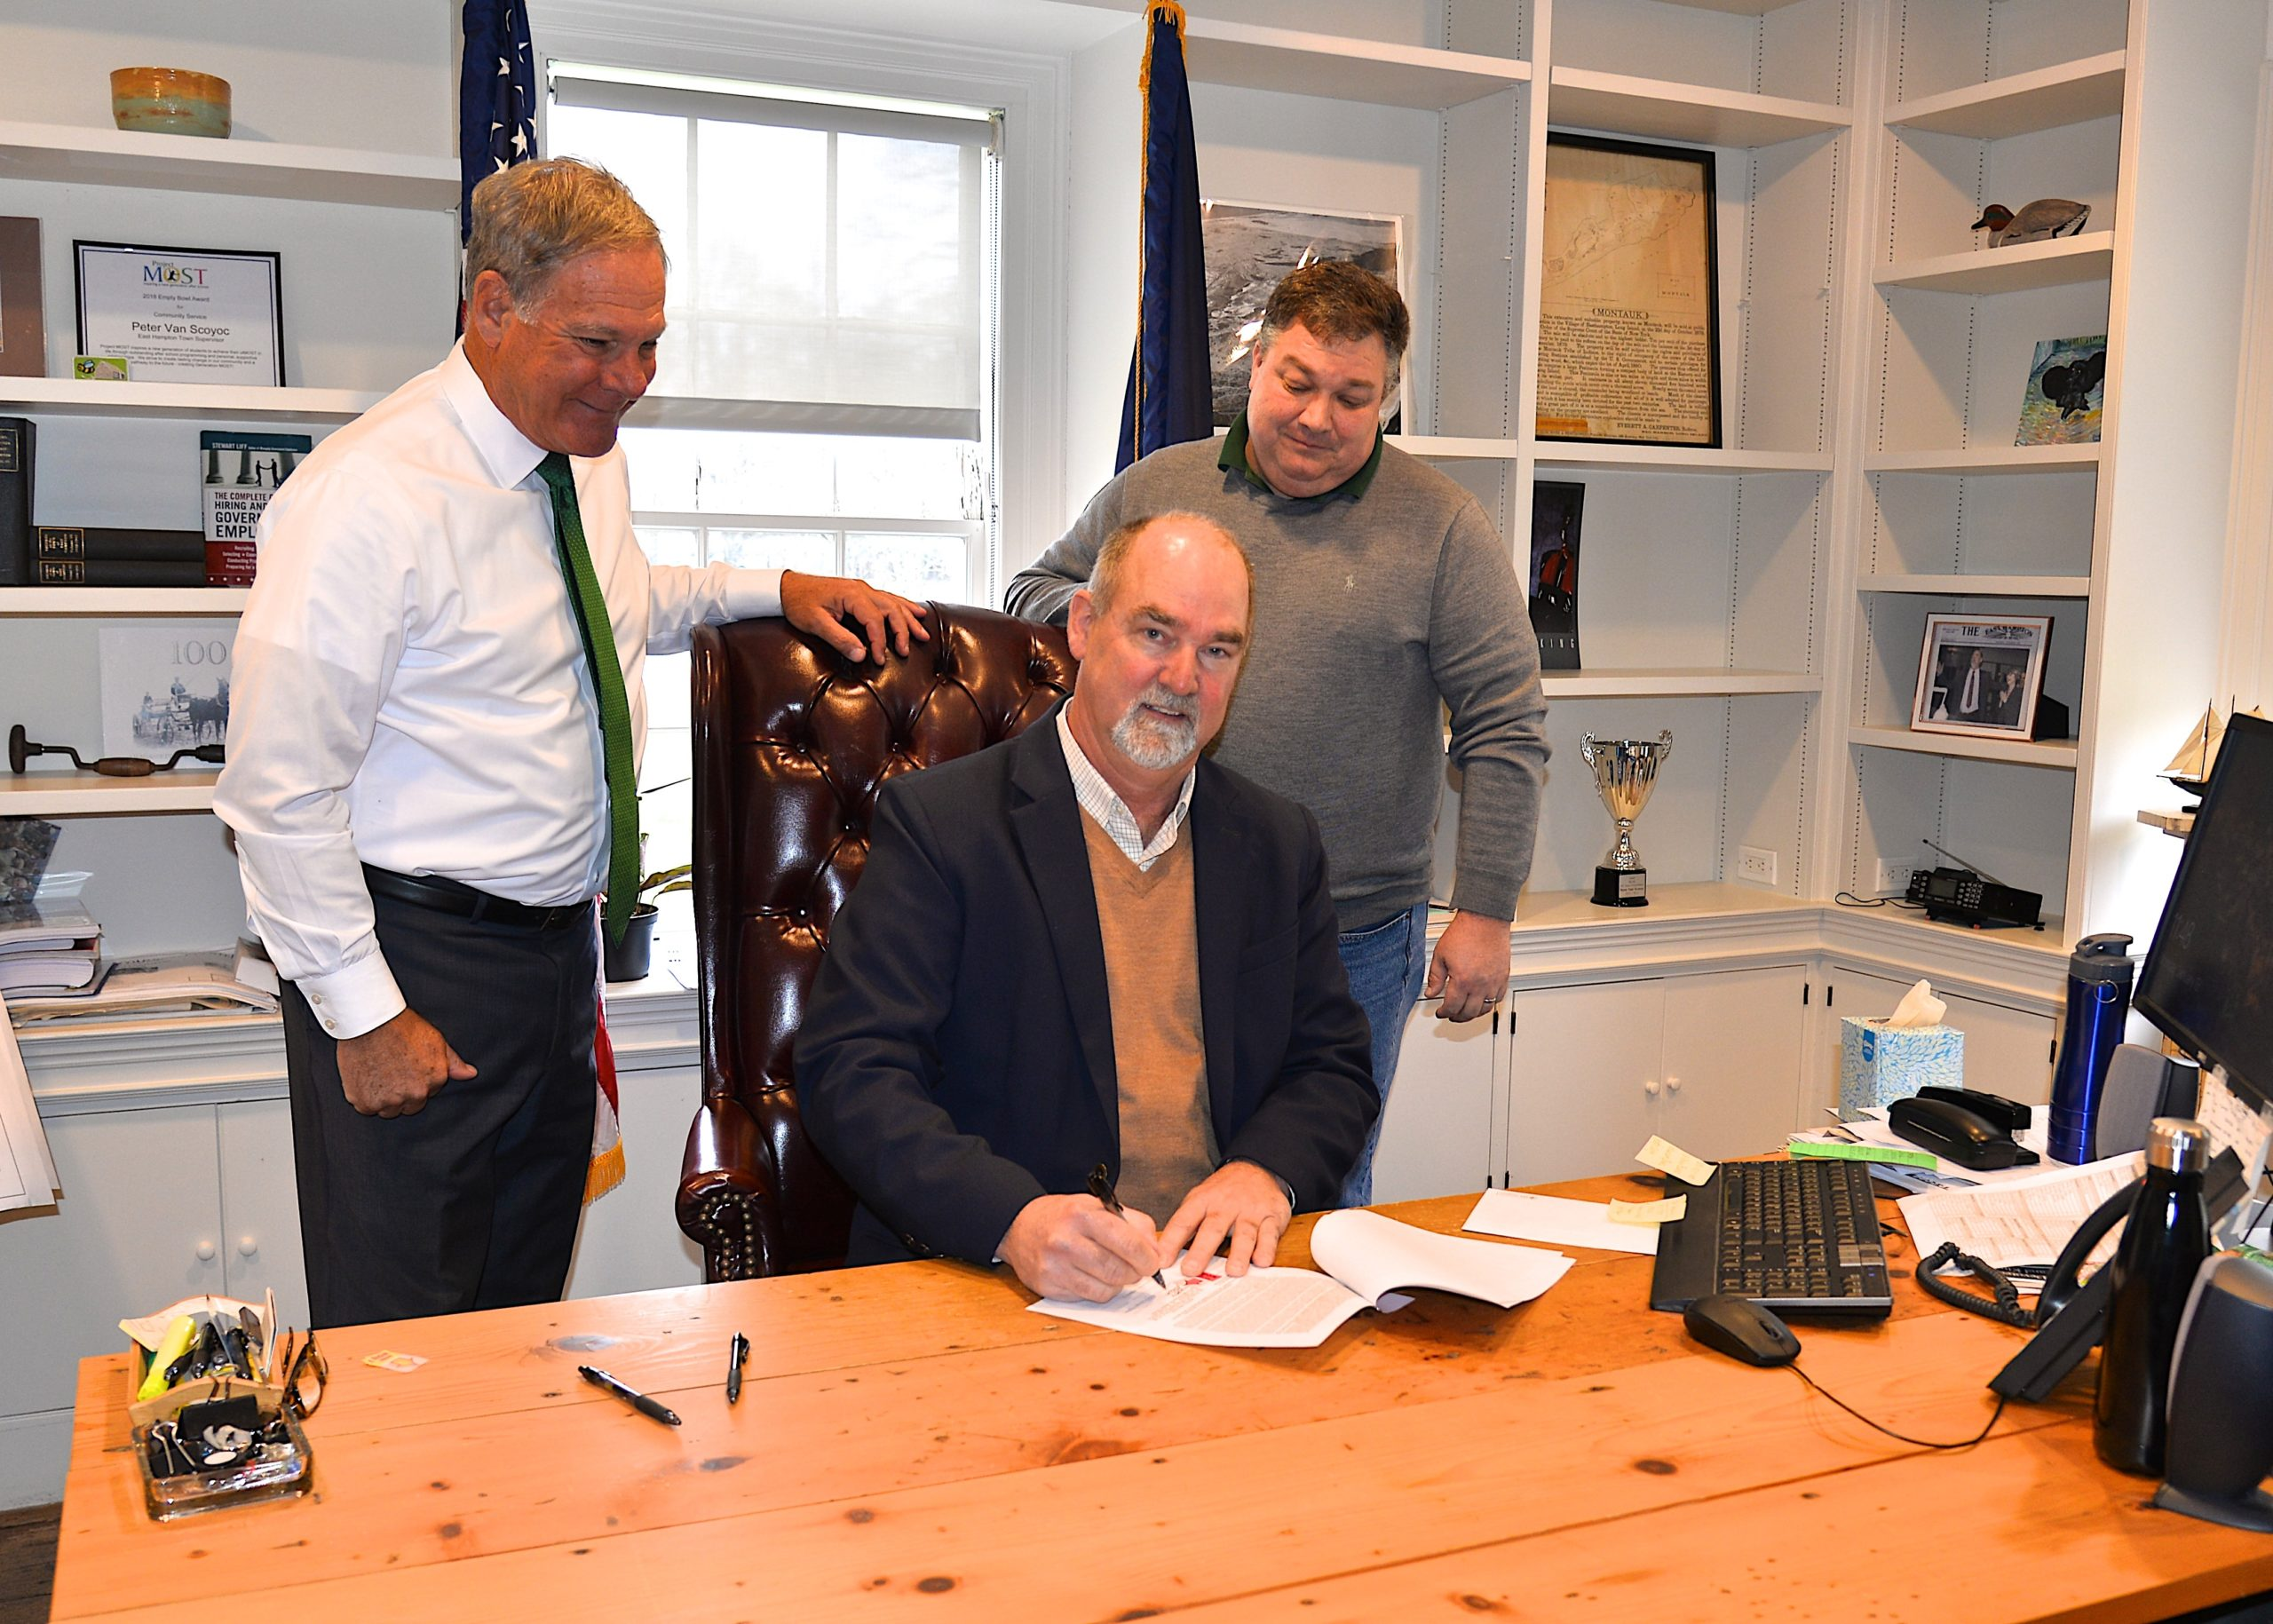 East Hampton Superintendent of Schools Richard Burns. town Supervisor Peter Van Scoyoc, and School Board President J.P., from left to right, met in the supervisor's office Monday to close on the sale of the former scavenger waste treatment site from the town to the school district. The schools will use the property as a bus depot with a classroom for an auto mechanics program. KYRIL BROMLEY